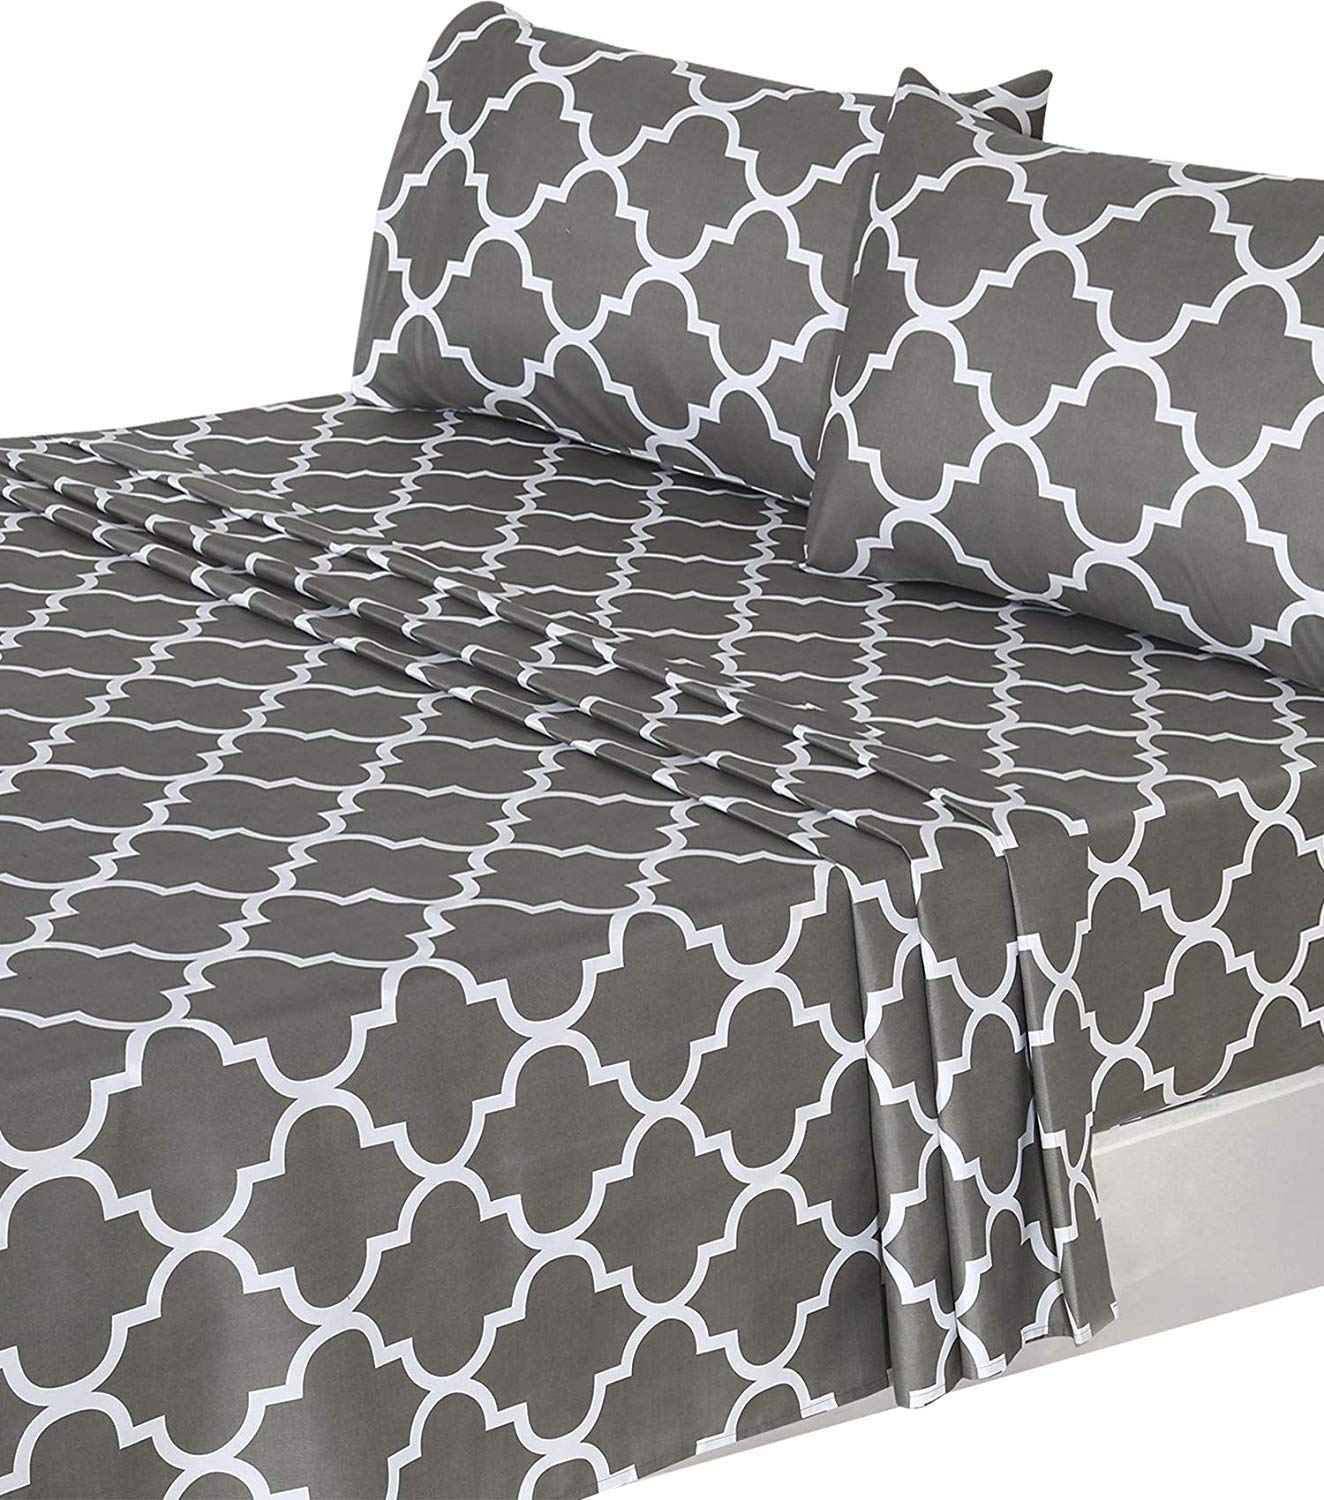 Utopia Bedding 3-Piece Bed Sheet Set (Twin, Grey) - 1 Flat Sheet, 1 Fitted Sheet, and 1 Pillow Case